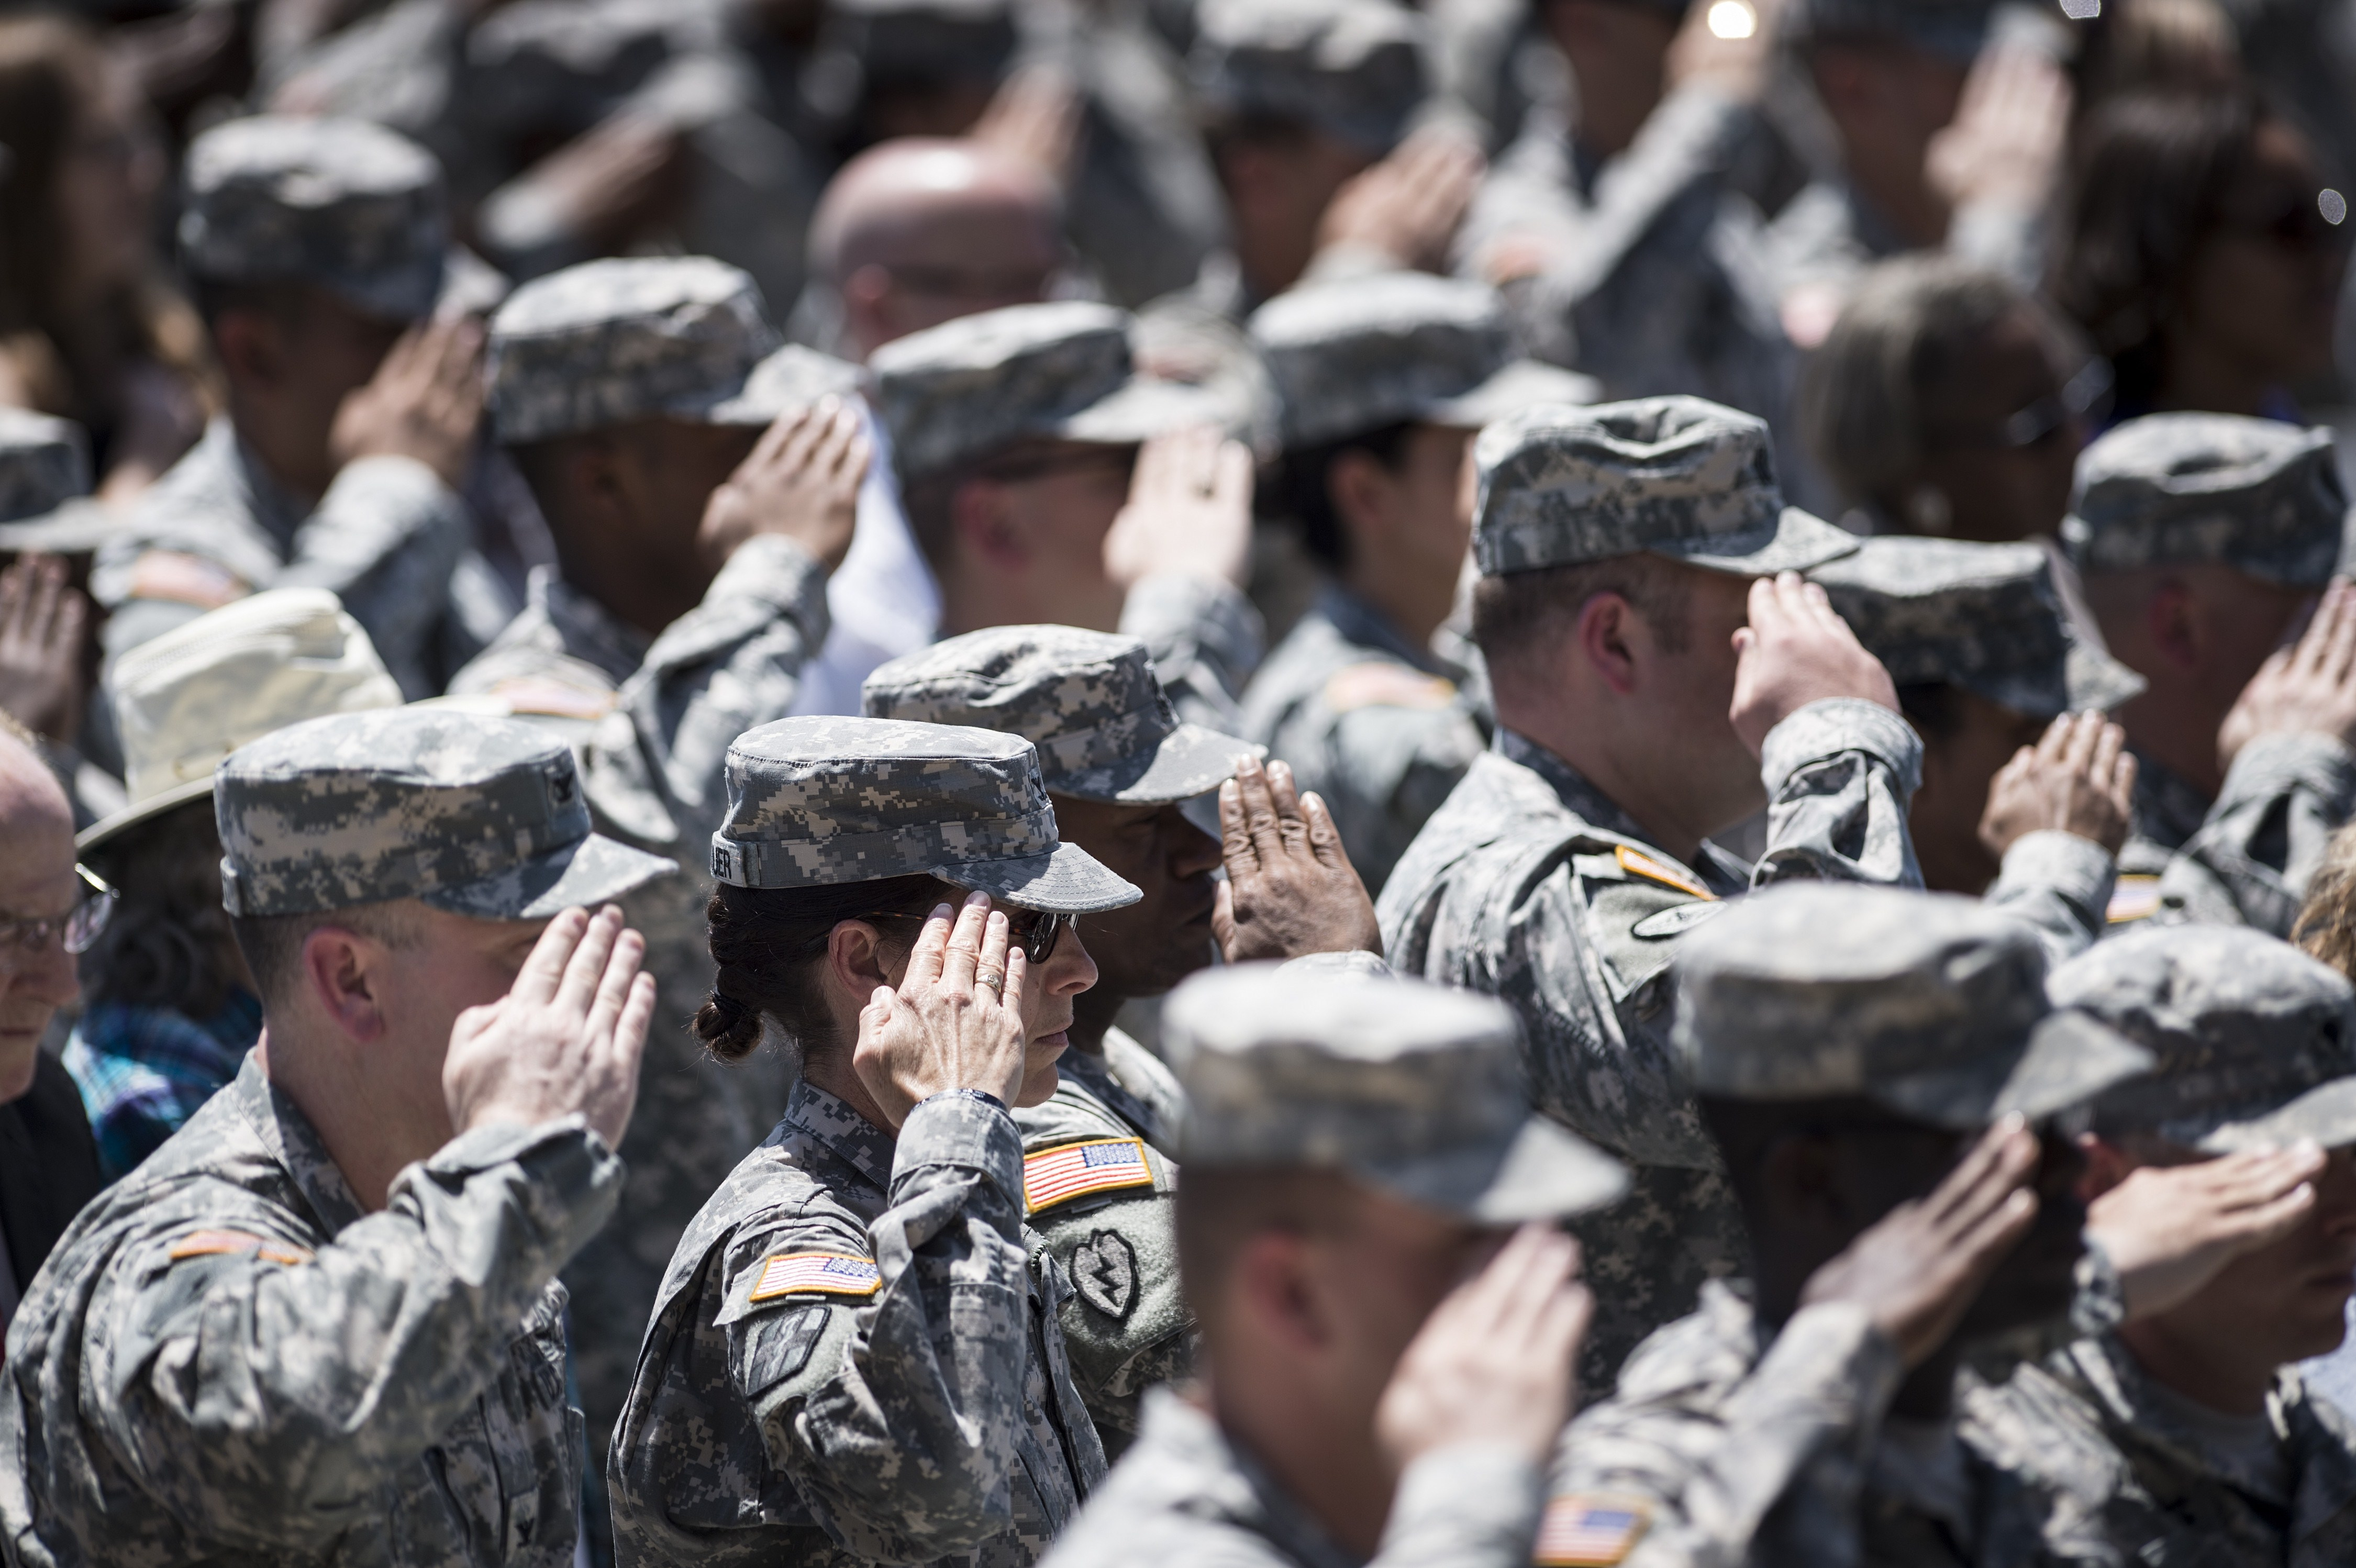 Soldiers listen to the US national anthem during a memorial service at Fort Hood in Texas on April 9, 2014.